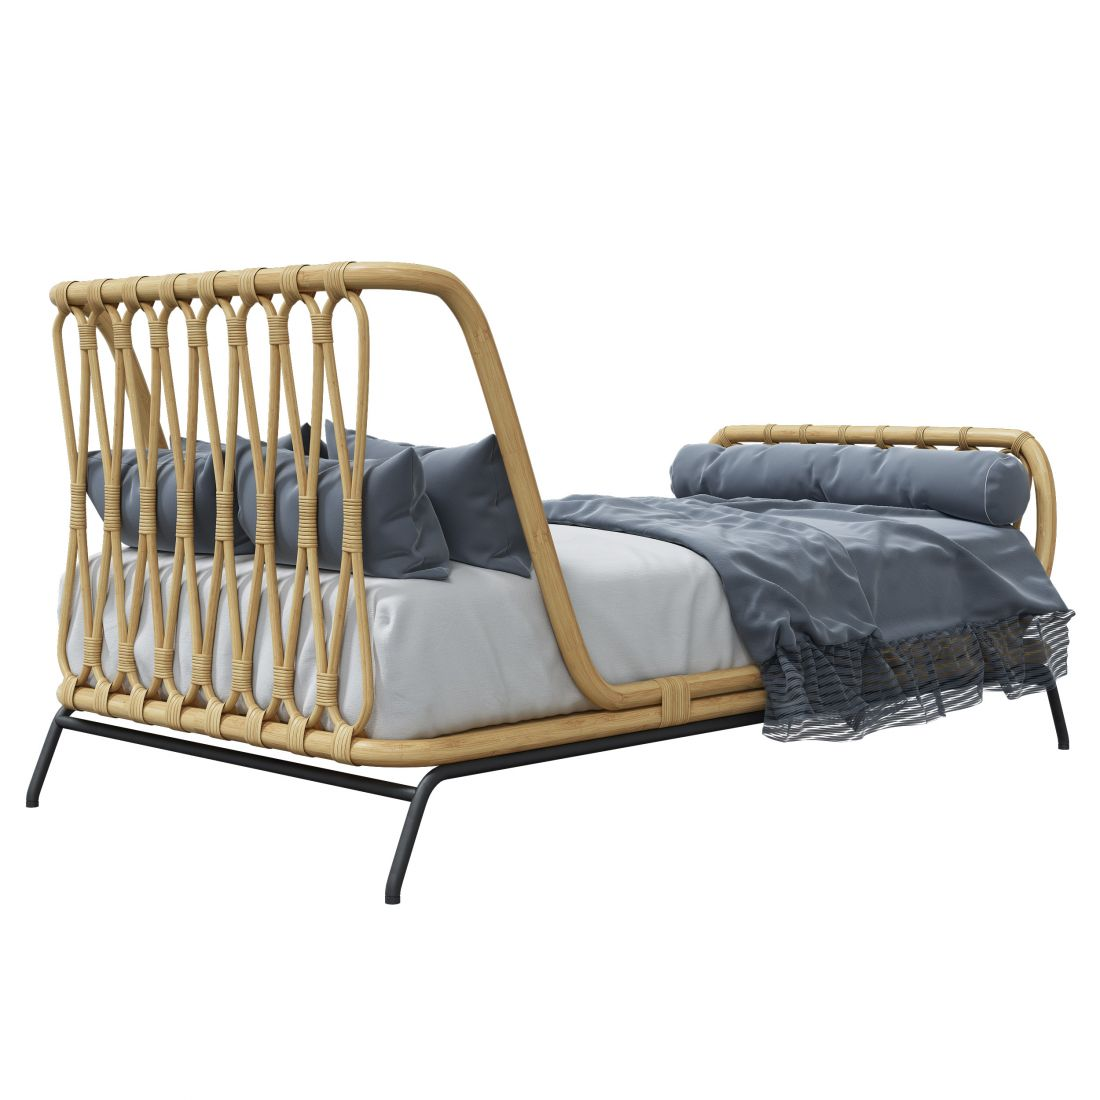 Rattan Kids Twin Bed 3d Model For Vray